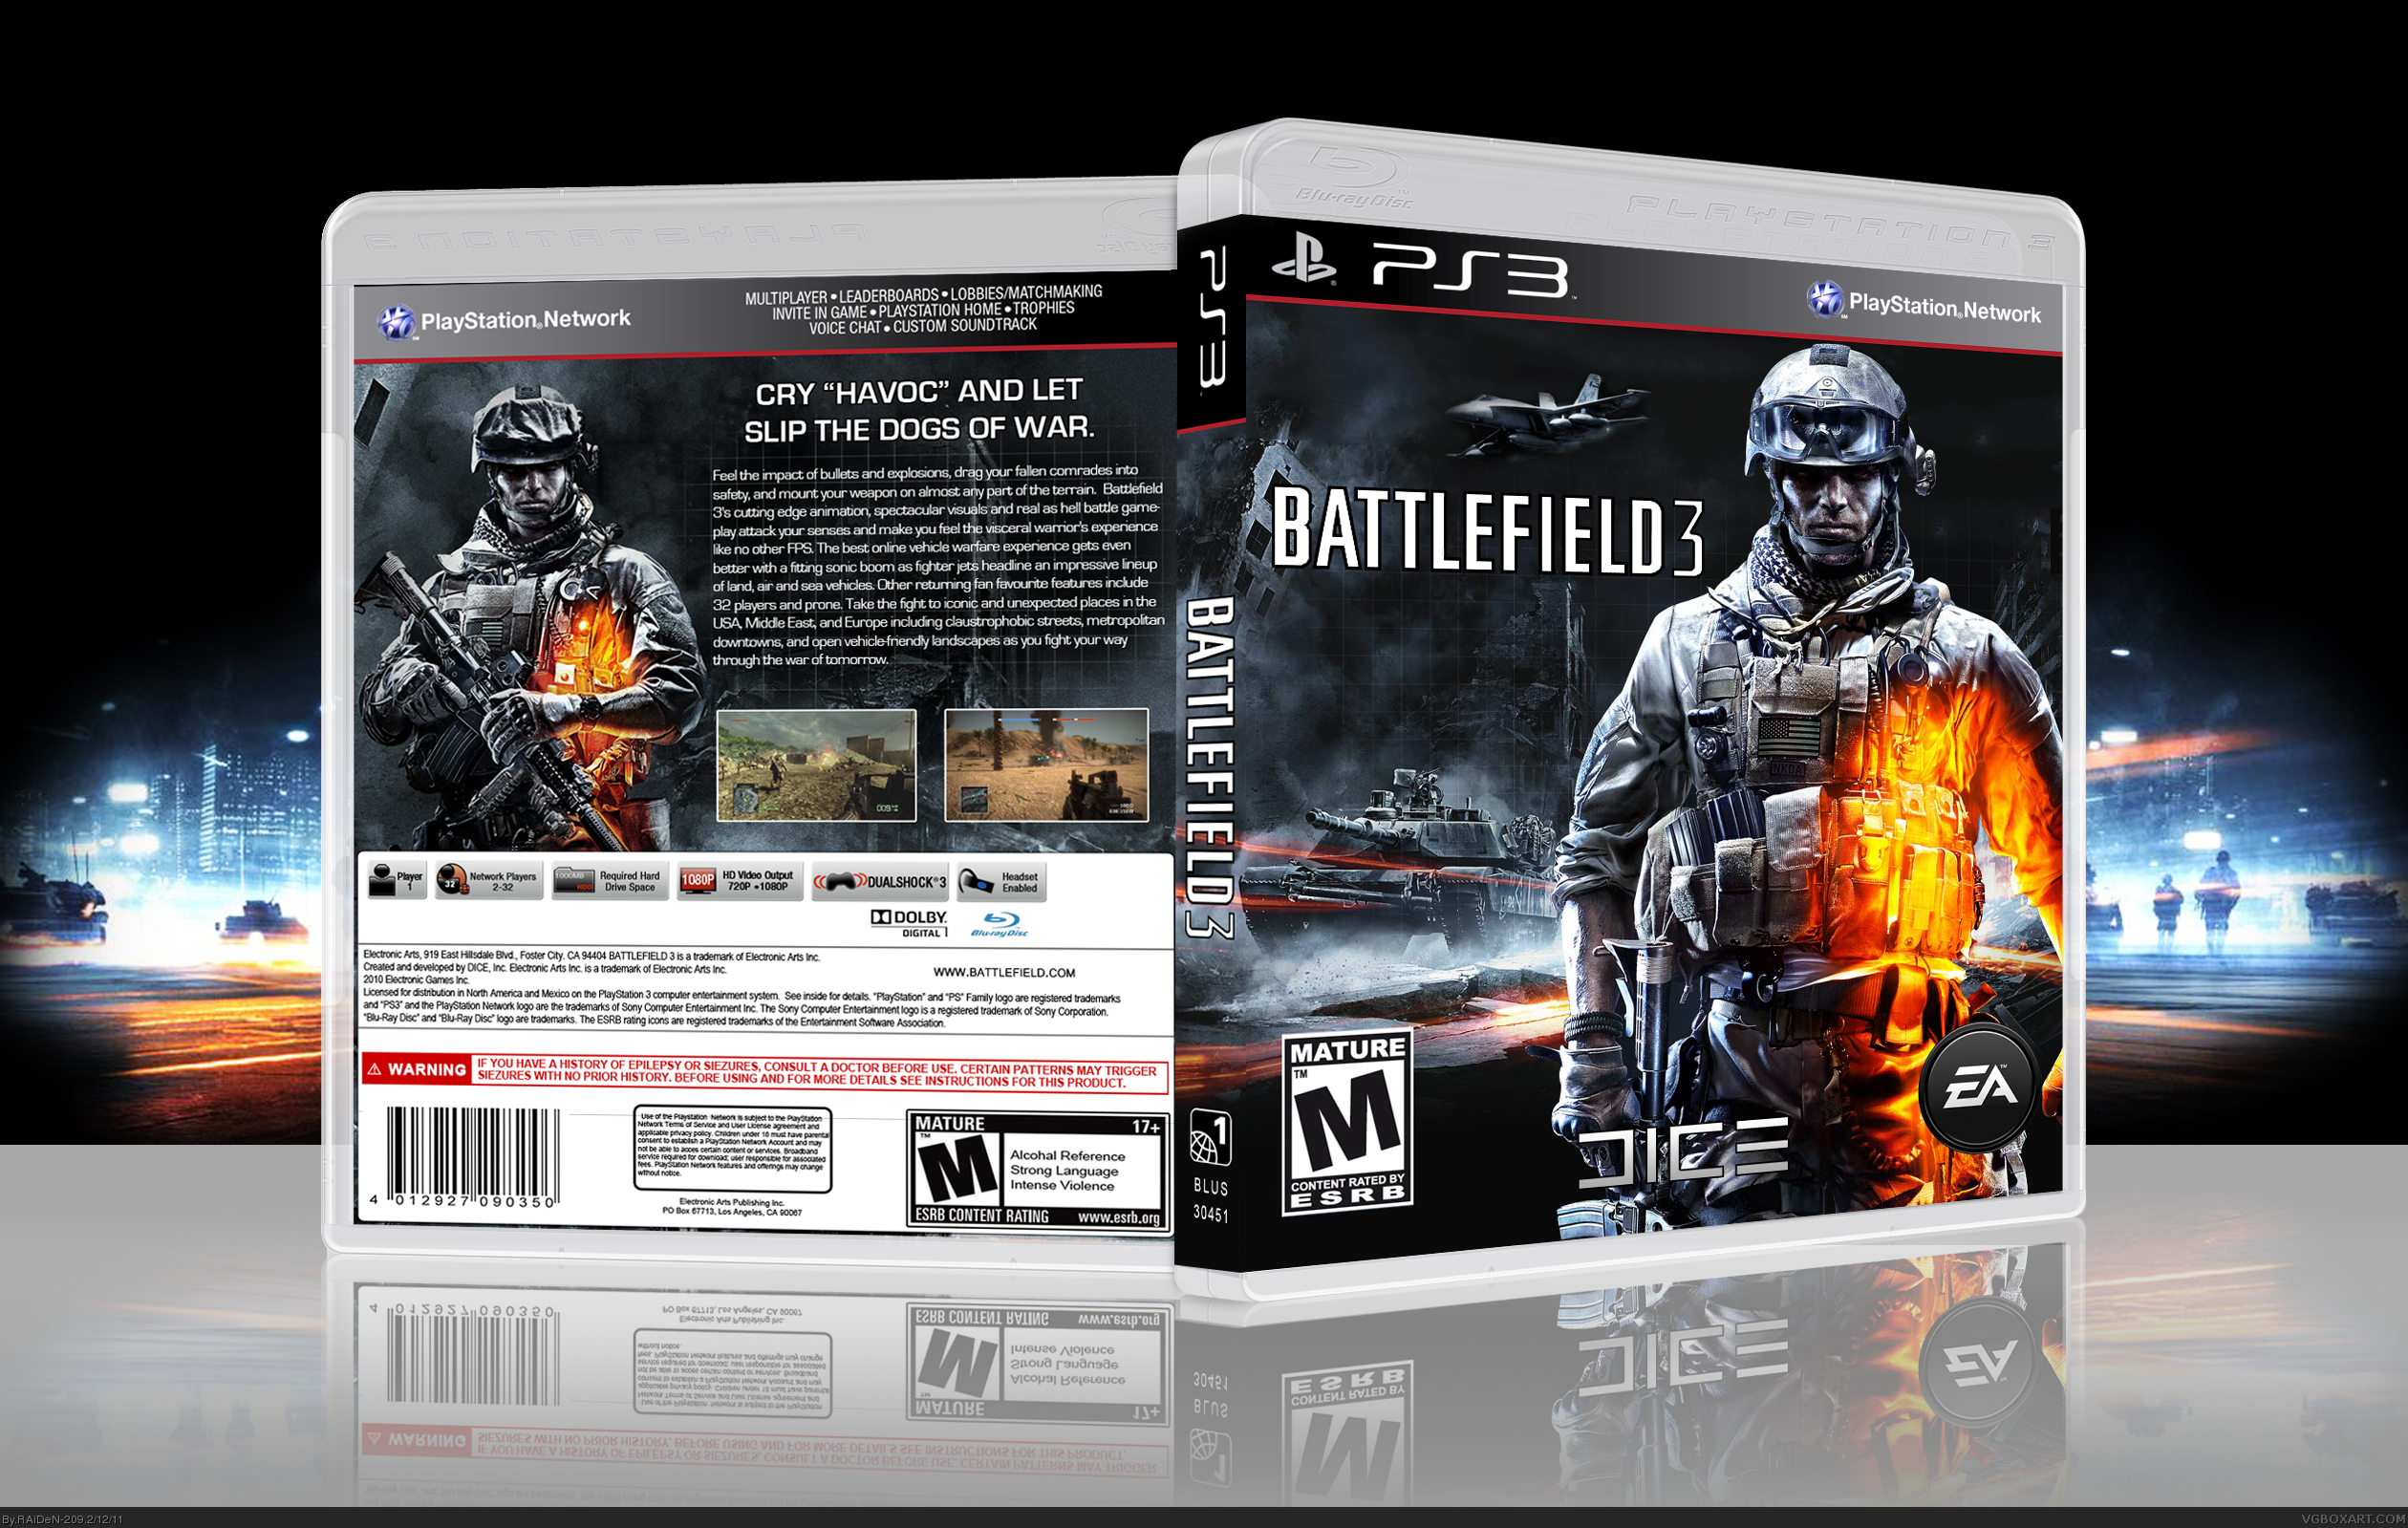 Battlefield 3 Cover Ps3 | www.pixshark.com - Images ...